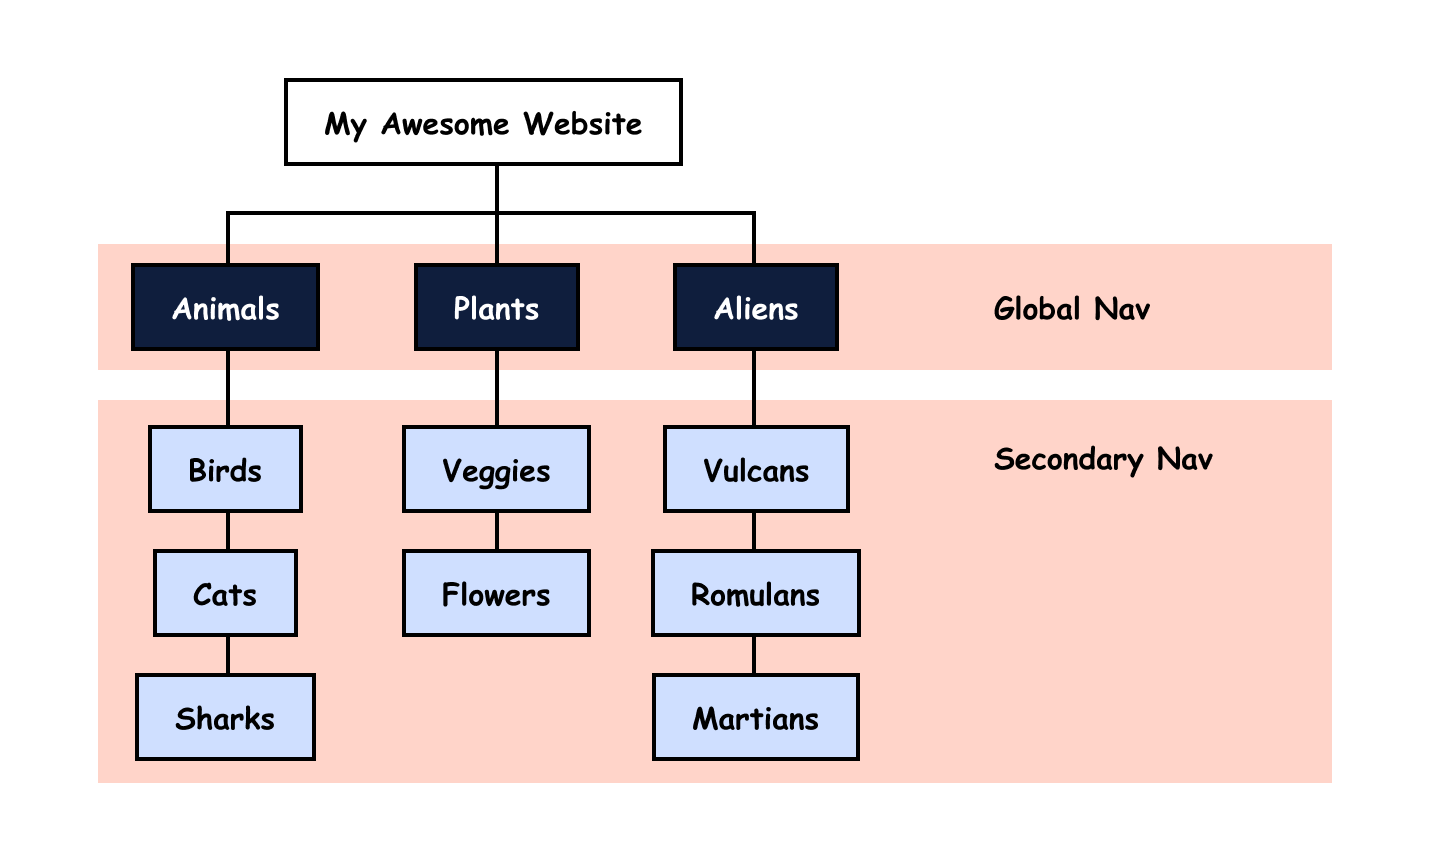 An information architecture map with global nav at the top and secondary nav below (which shows pages within the top sections).